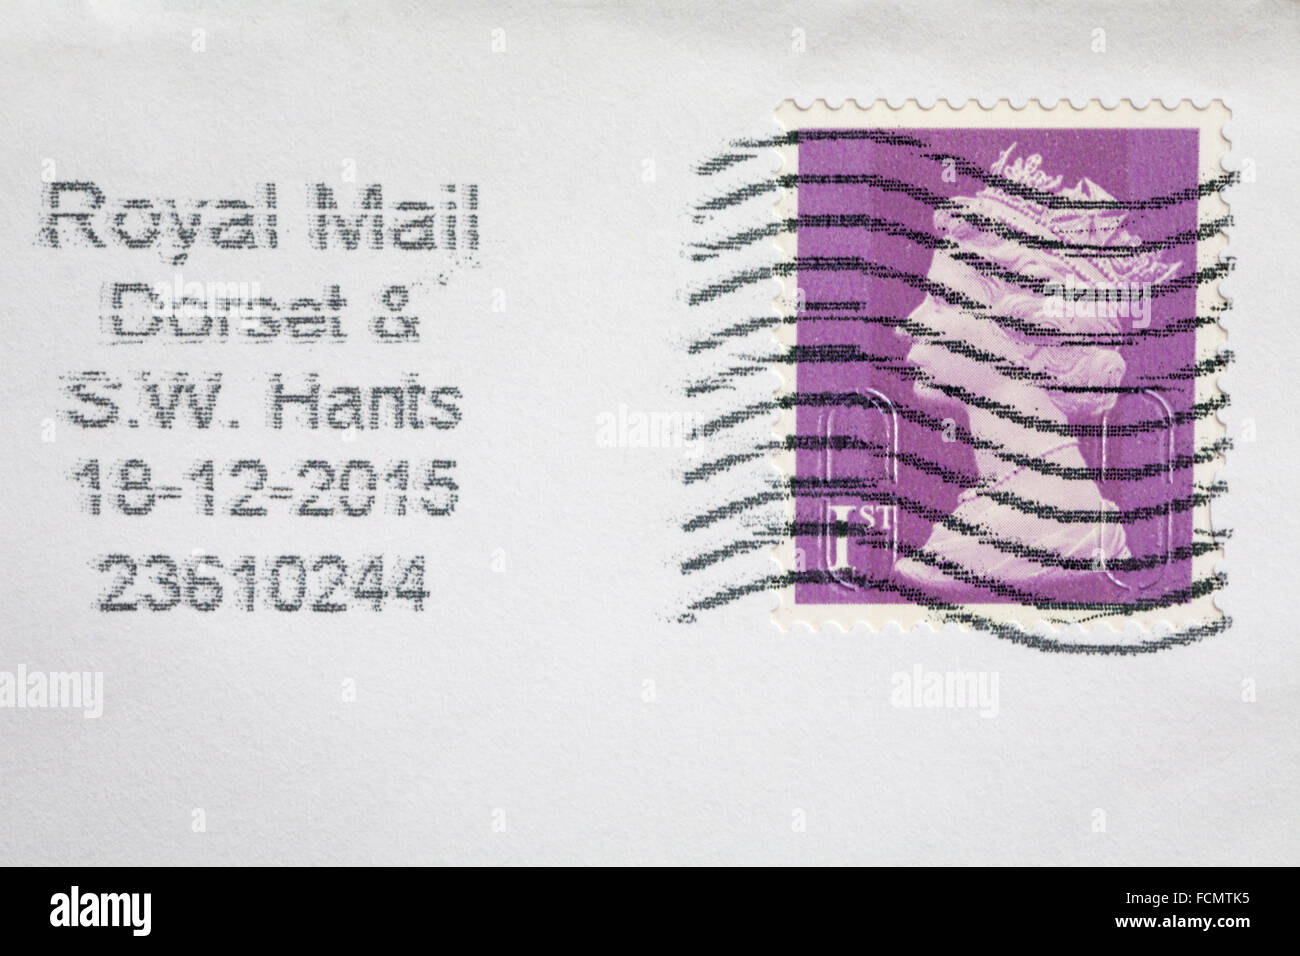 1st class stamp on envelope - Stock Image